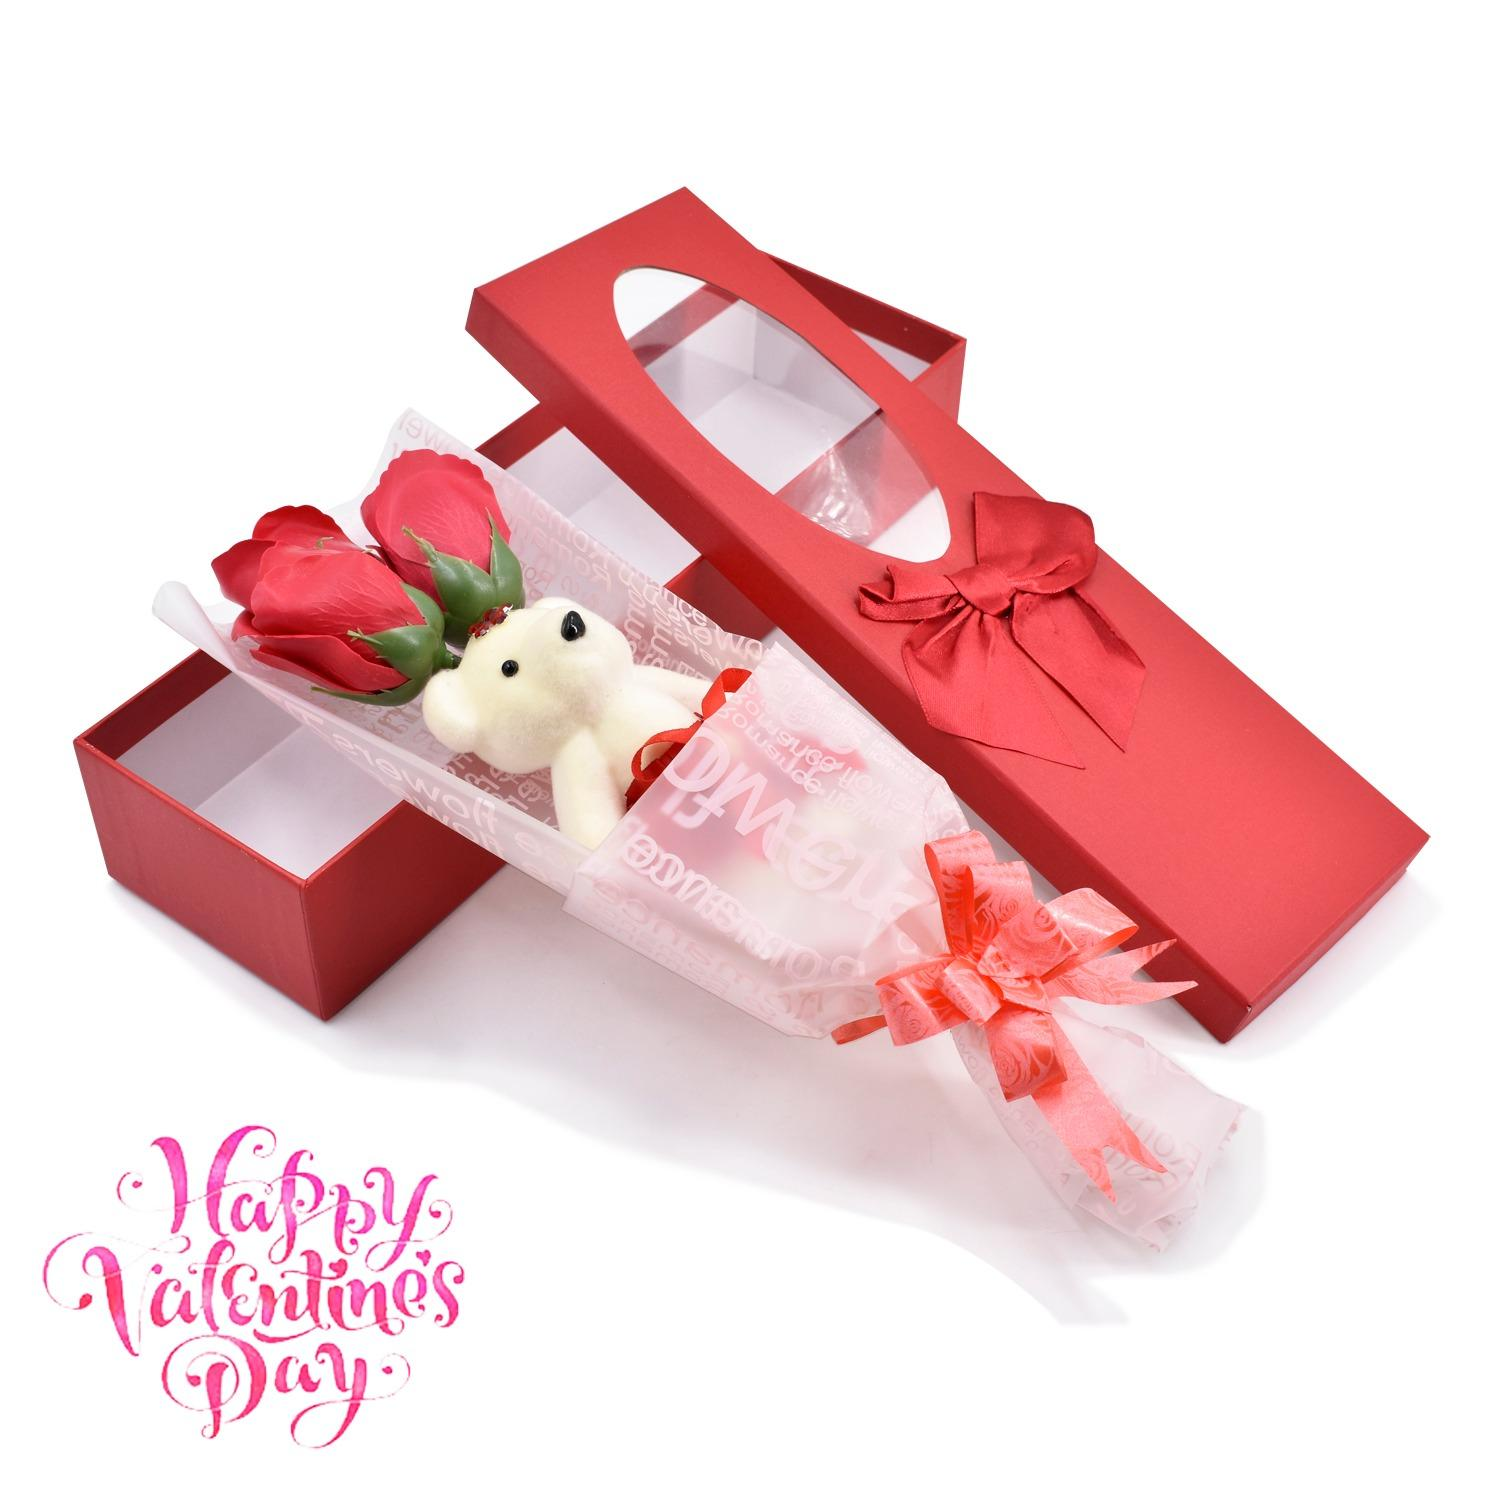 Novelty Gift For Sale Novelty Gifts Prices Brands Review In